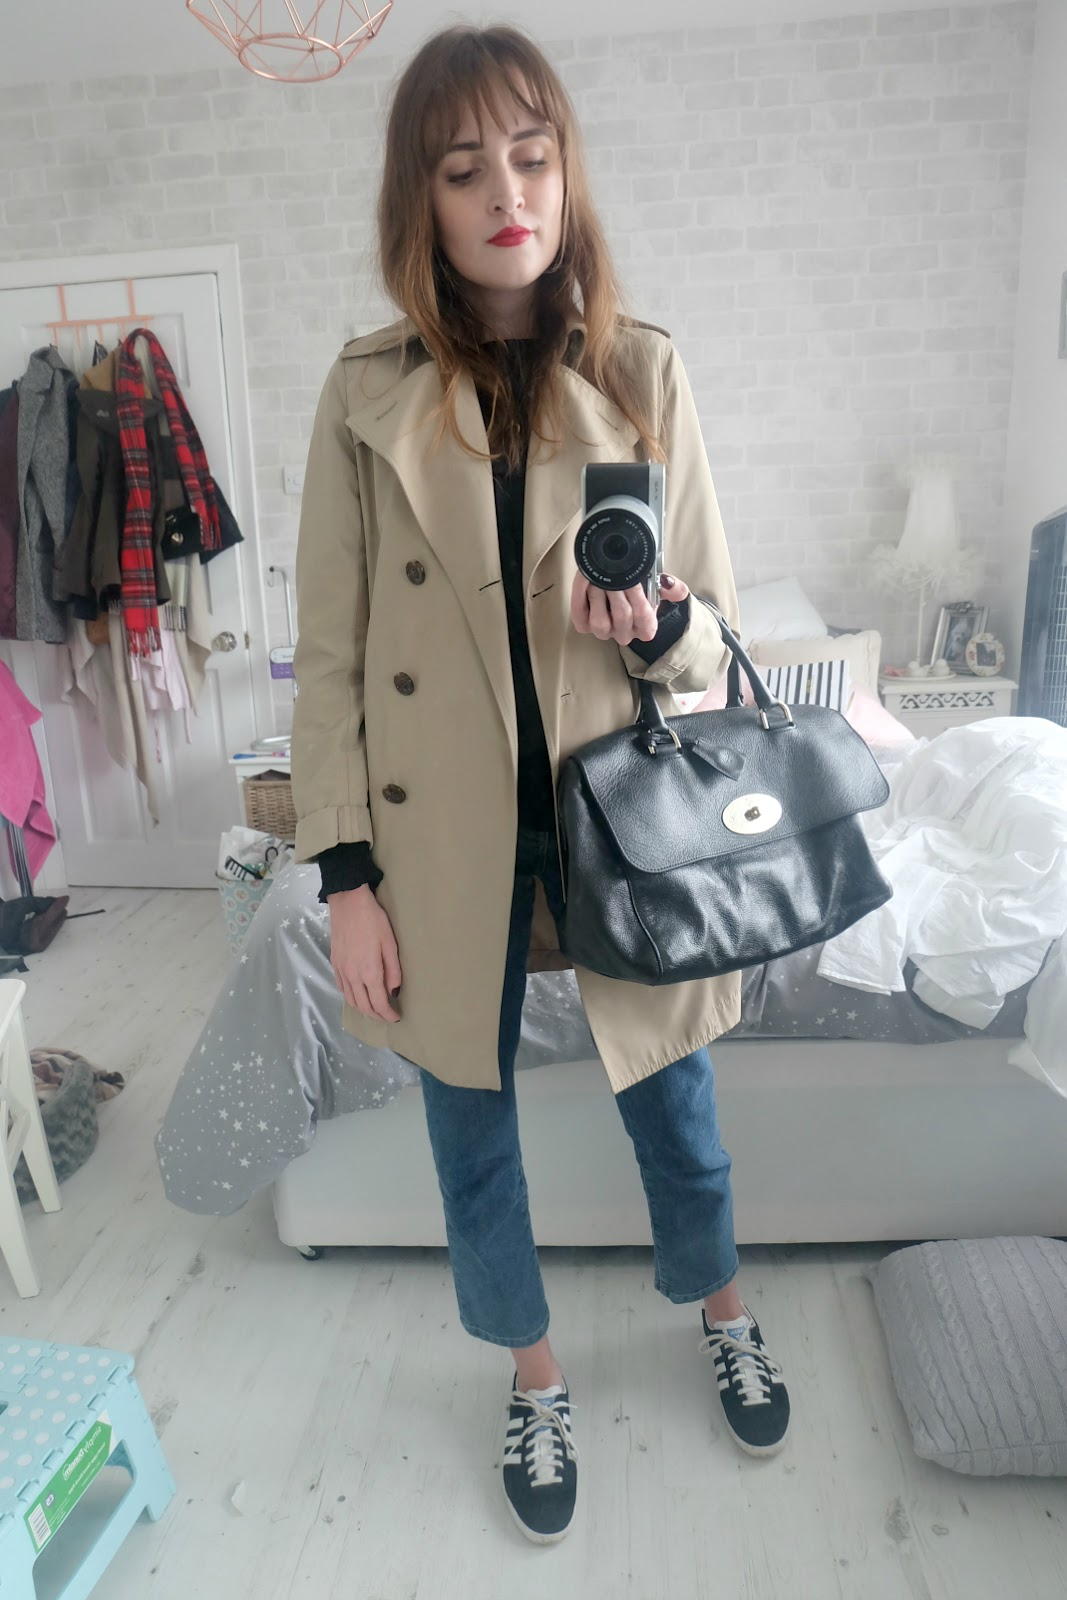 marks and spencer long sleeved tassel top, warehouse straight leg jeans, adidas gazelles, lucy williams x missoma large horn necklace, uniqlo trench coat, chanel la fascinante lipstick